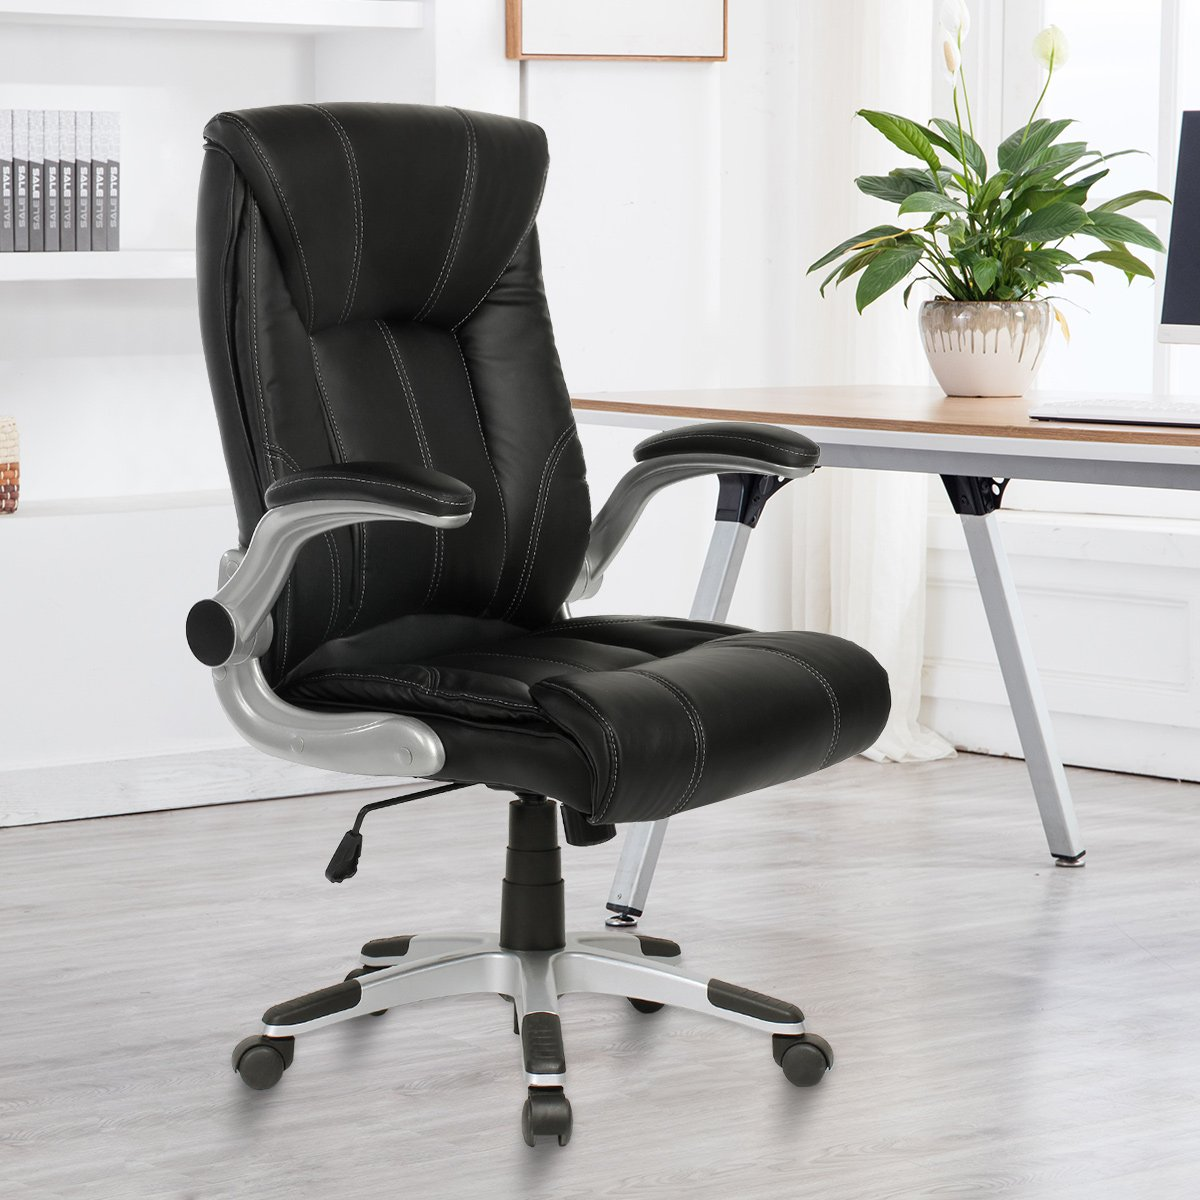 YAMASORO Ergonomic High-Back Executive Office Chair PU Leather Computer Desk Chair with Flip-up Arms and Back Support by YAMASORO (Image #3)